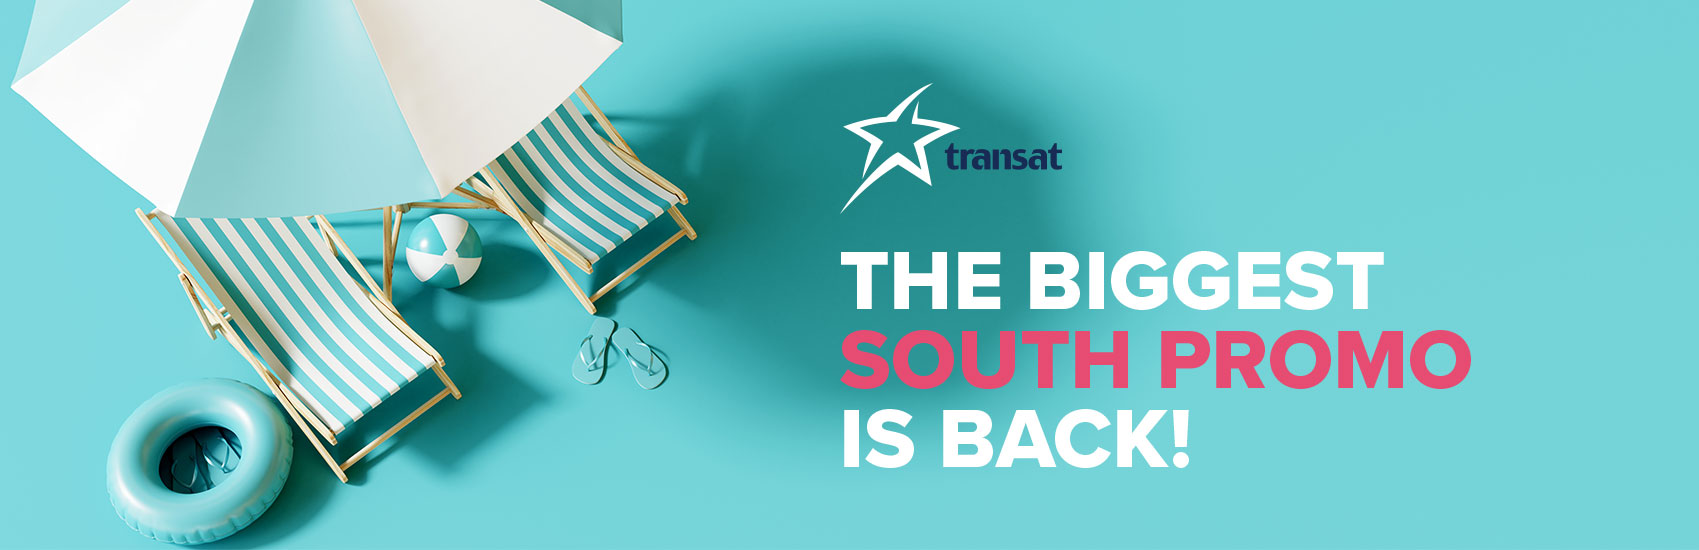 Transat Winter Early Booking Promotion